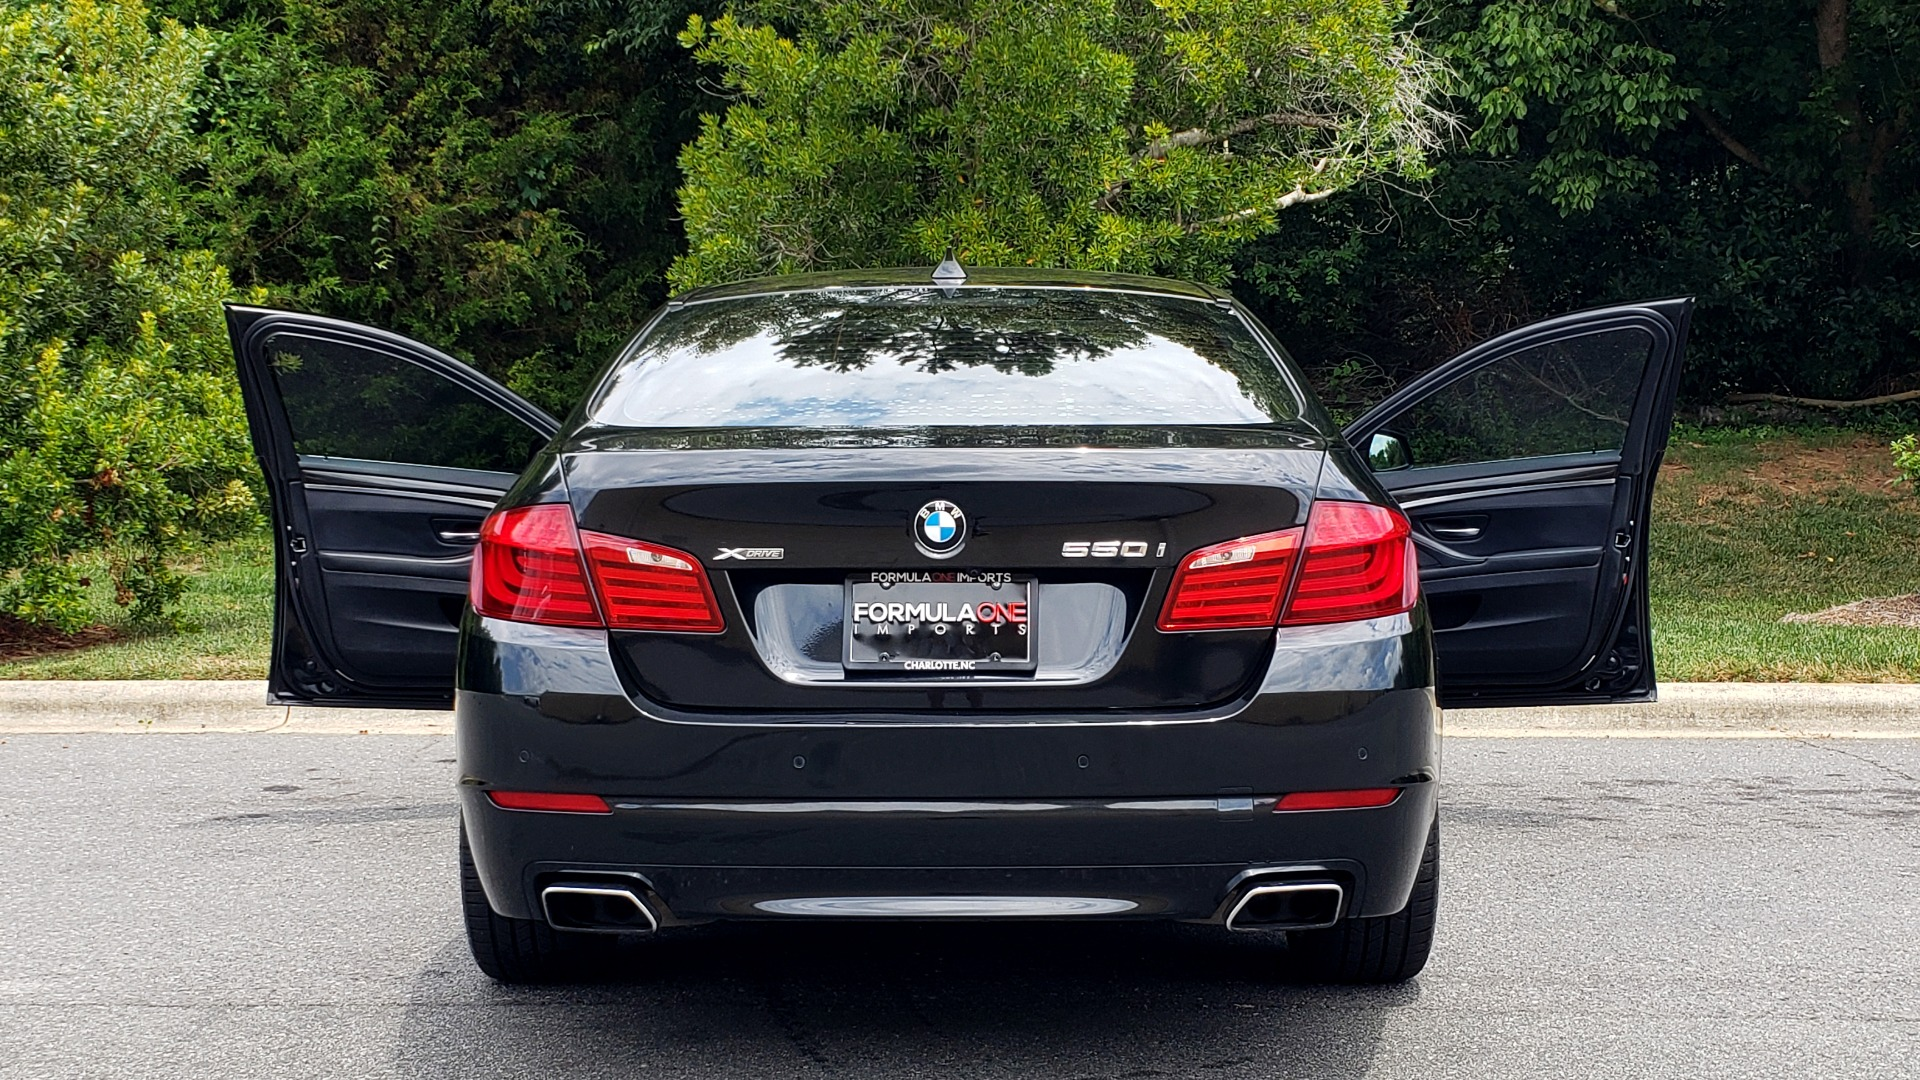 Used 2013 BMW 5 SERIES 550I XDRIVE LUX PKG / EXEC / COLD WTHR / NAV / SUNROOF / REARVIEW for sale $17,995 at Formula Imports in Charlotte NC 28227 23